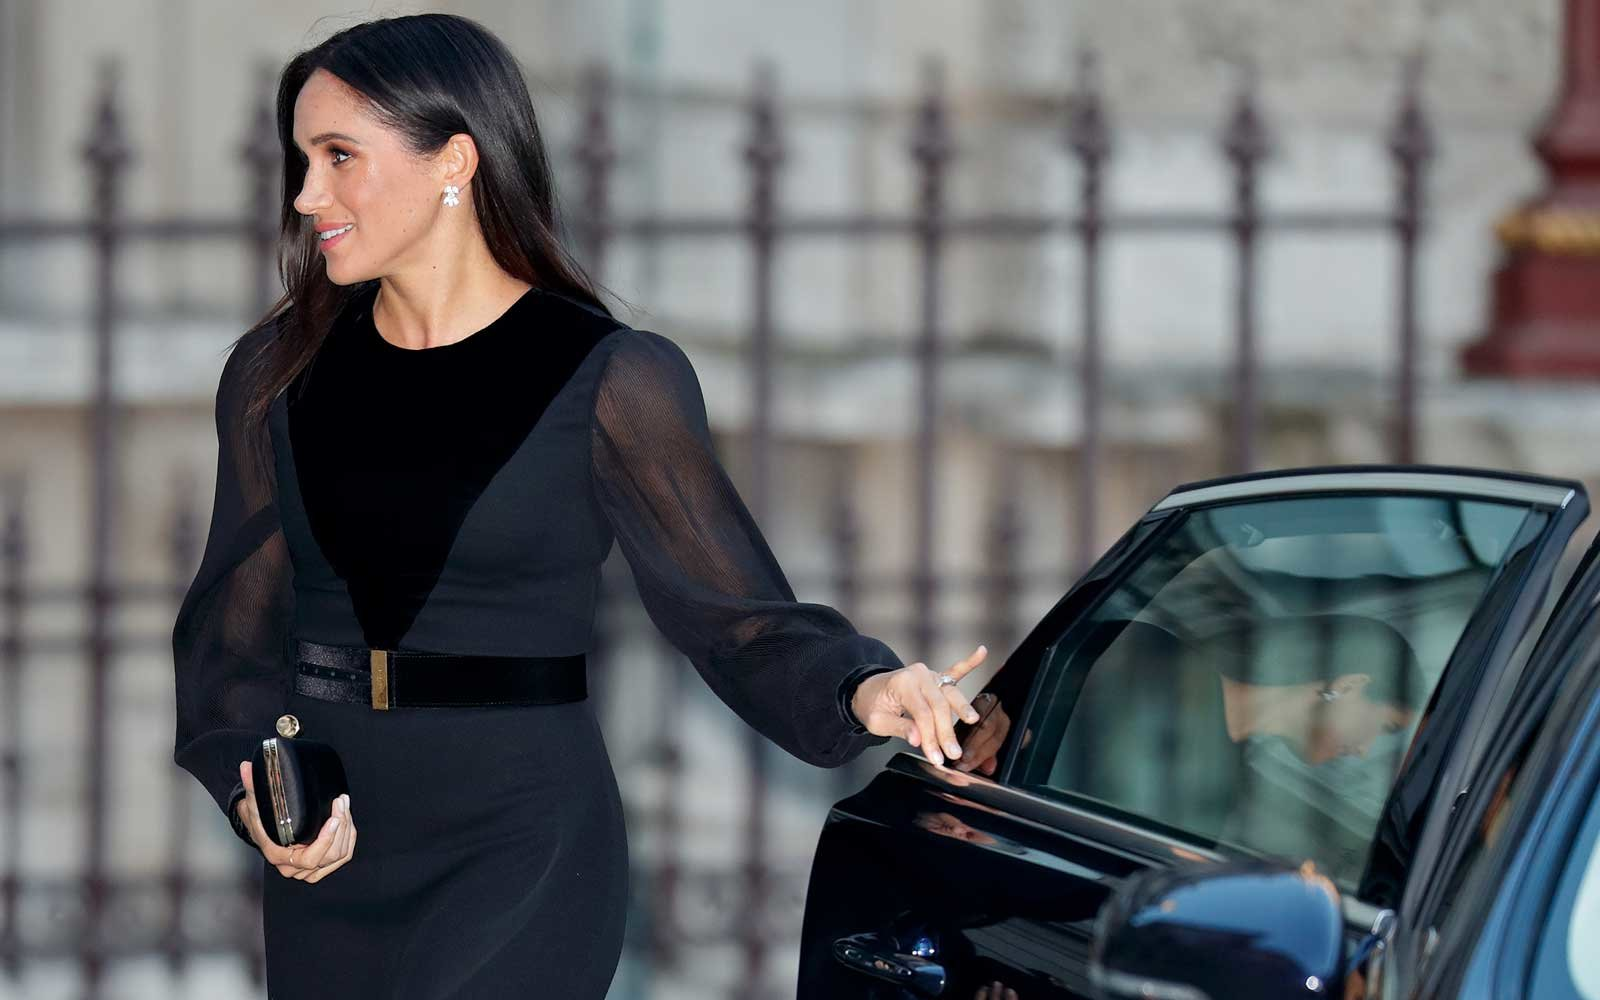 Meghan, Duchess of Sussex arrives to open 'Oceania' at the Royal Academy of Arts on September 25, 2018 in London, England. 'Oceania' is the first-ever major survey of Oceanic art to be held in the United Kingdom.